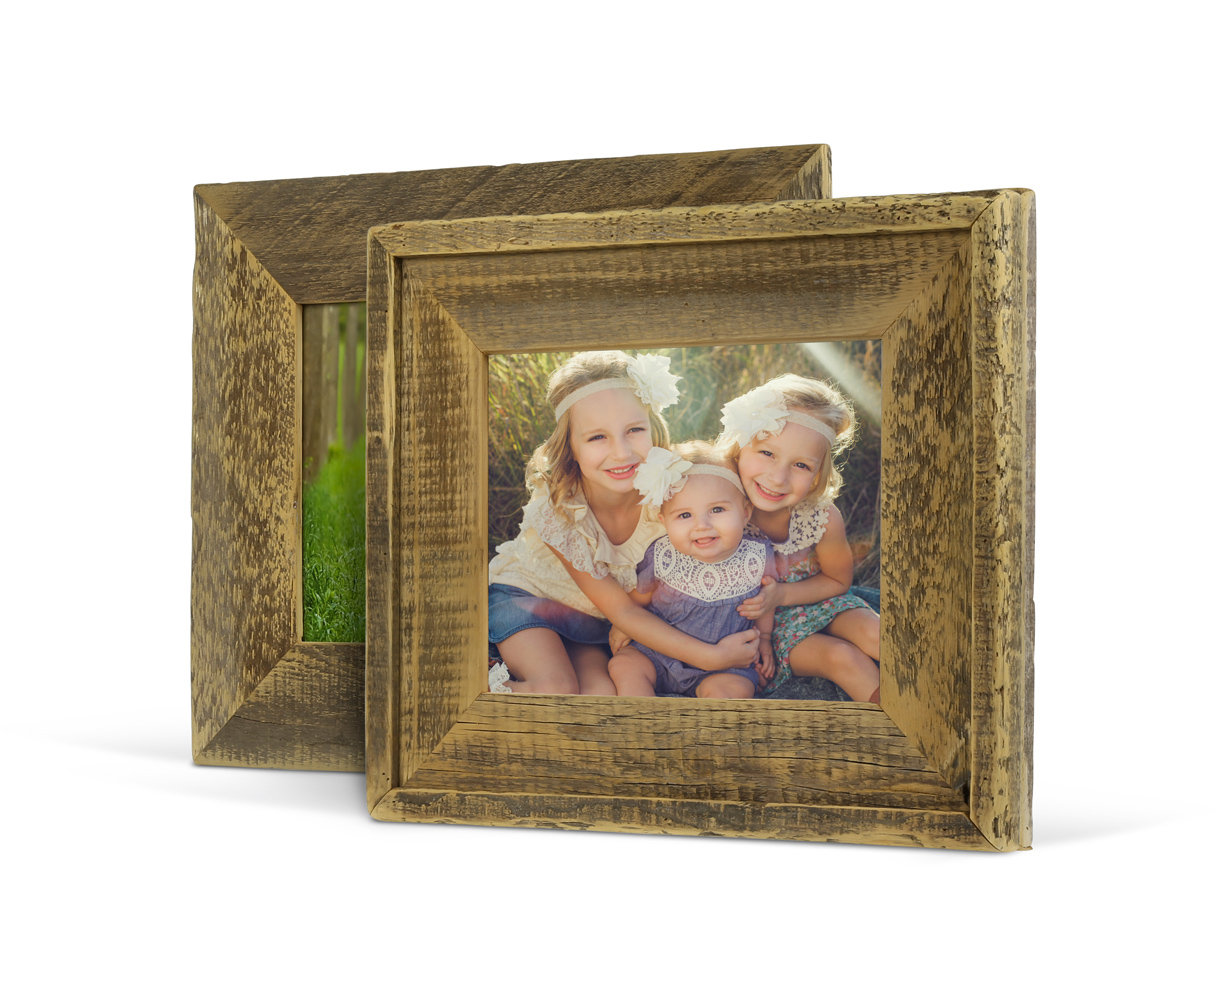 """Barnwood Frames - Add charm by displaying a special image in a genuine Barnwood Frame. From vintage themed weddings, to milestone moments, the Barnwood Frames create a natural warmth in one's home. Reveal your beautiful story with a frame that has a beautiful past.Handcrafted in Minnesota, these frames are built using reclaimed wood from old barns. Choose from two types of styles, standard Barnwood Frame or the Barnwood Frame with Trim, both with 4"""" mouldings. Barnwood Frames arrive fully assembled with your image, complete with craft paper backing, a wire hanger and a 'Minnesota Made' stamp on the back.Available in 8x10, 11x14, 12x12 & 16x20 sizes, starting at $120."""